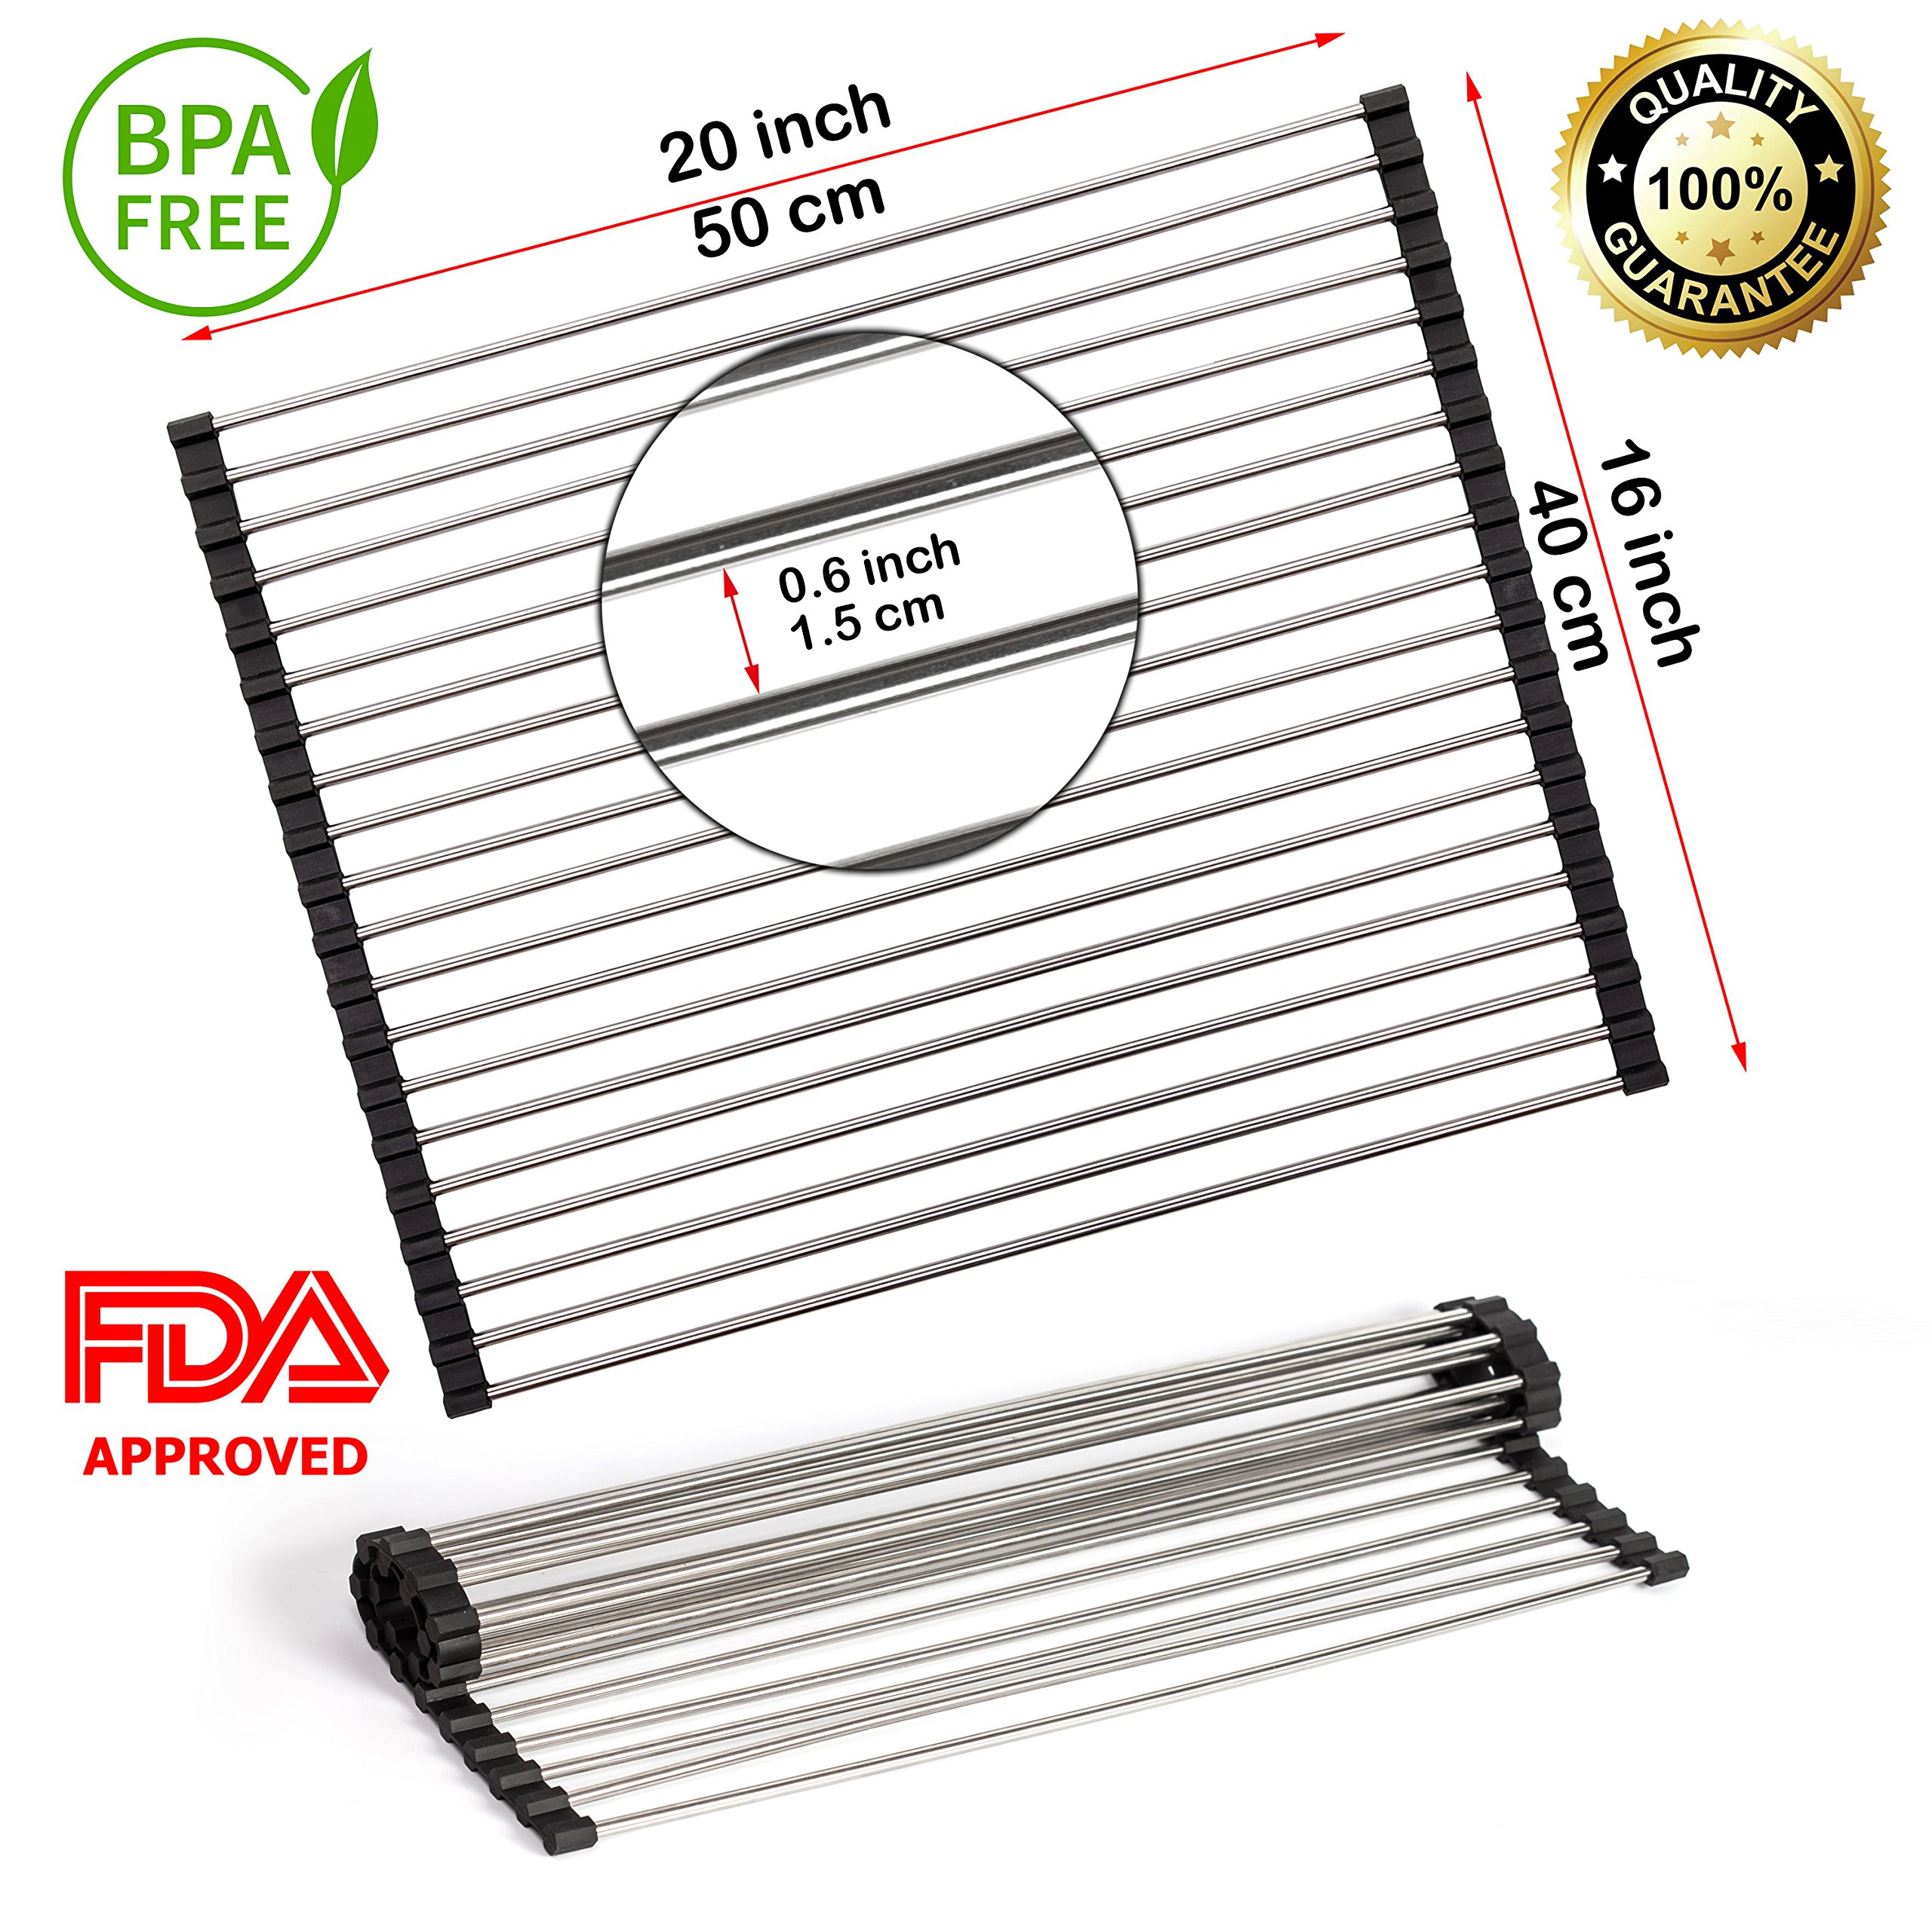 Roll-Up Dish Drying Rack 20''(L) x 16''(W) (50 x 40cm) - Foldable Multipurpose Heat Resistant Large Stainless Steel Kitchen Rollup Dish Drainer Over Sink Mat - Silicone Coated Rims